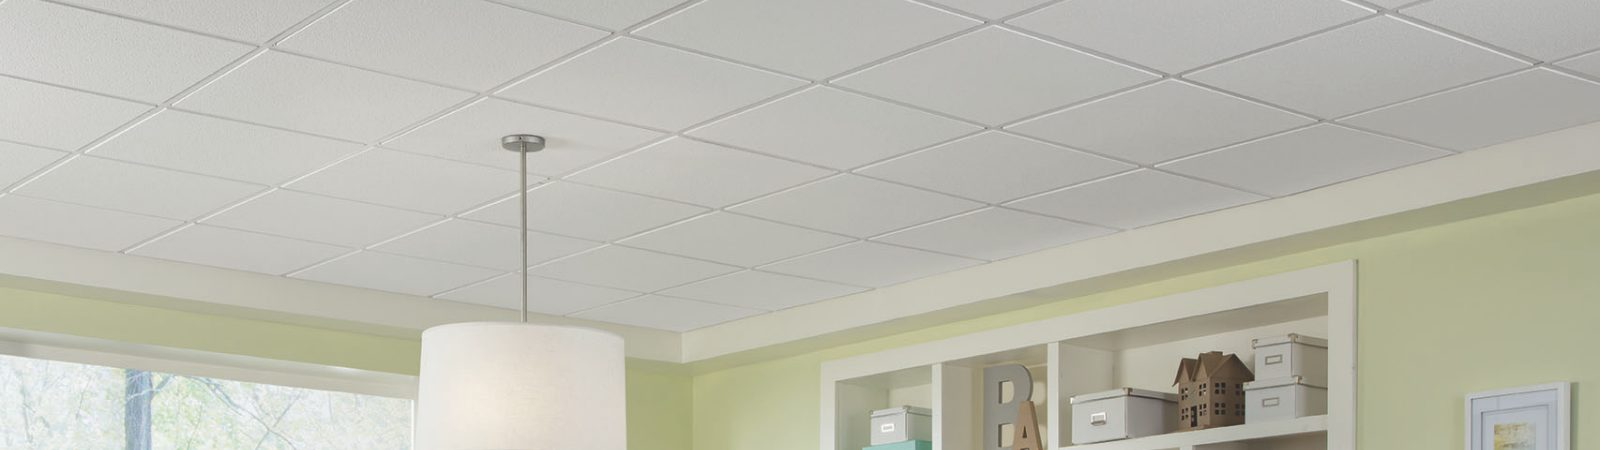 Prelude Xl 15 16 Quot Grid System Armstrong Ceilings Residential